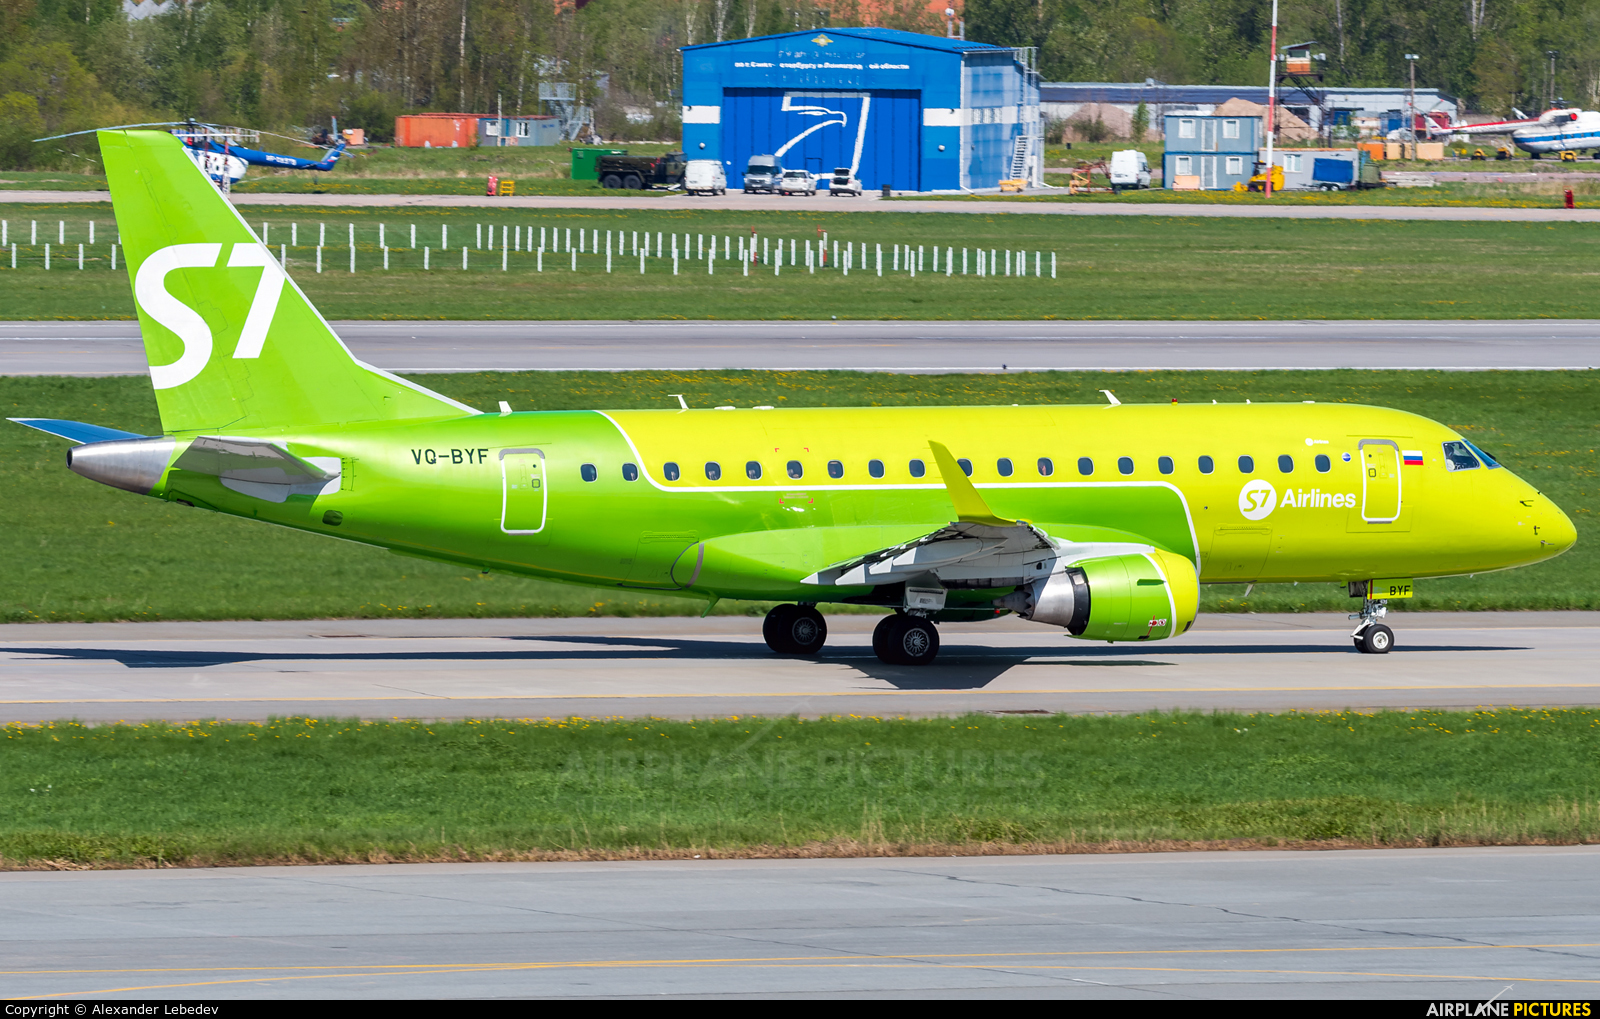 S7 Airlines VQ-BYF aircraft at St. Petersburg - Pulkovo